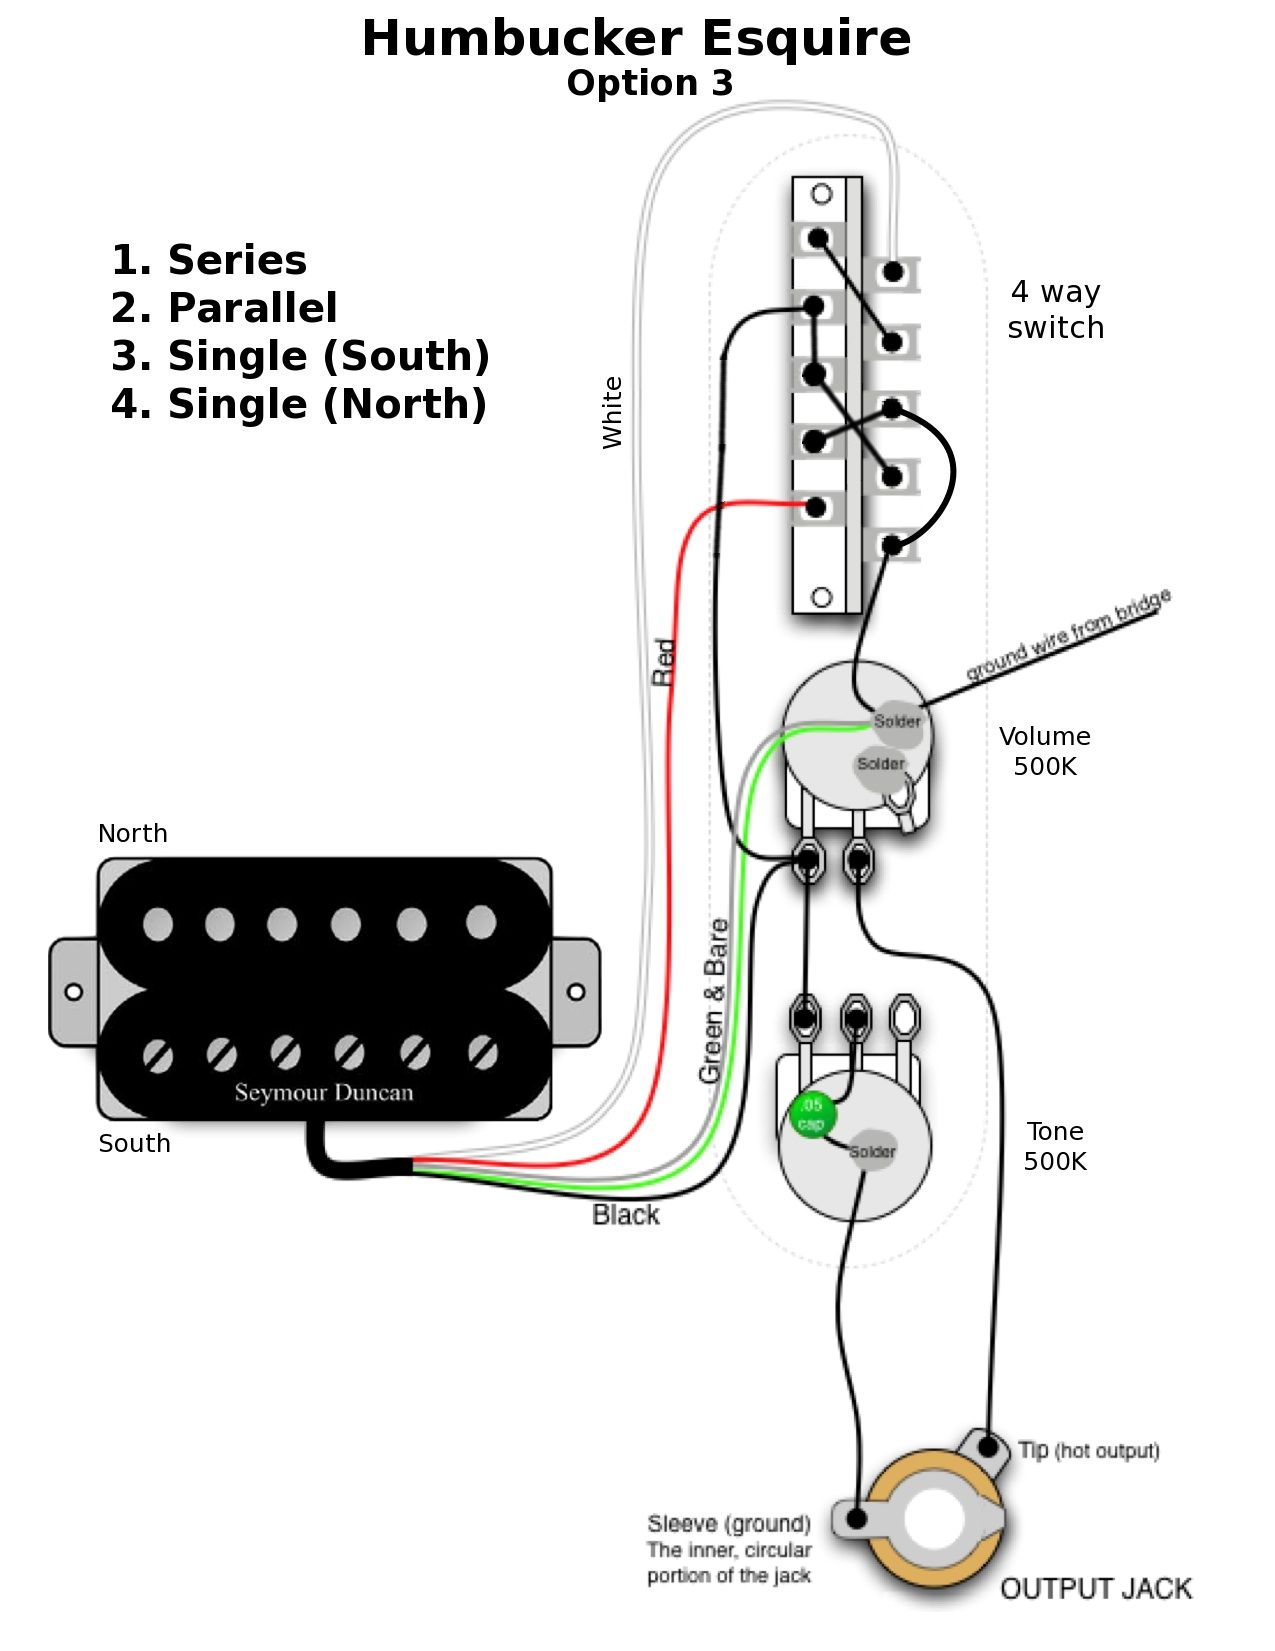 z243s esquire_hb_option_3 guitar wiring diagrams 1 hum 2 single guitar discover your fender esquire wiring diagram at gsmportal.co